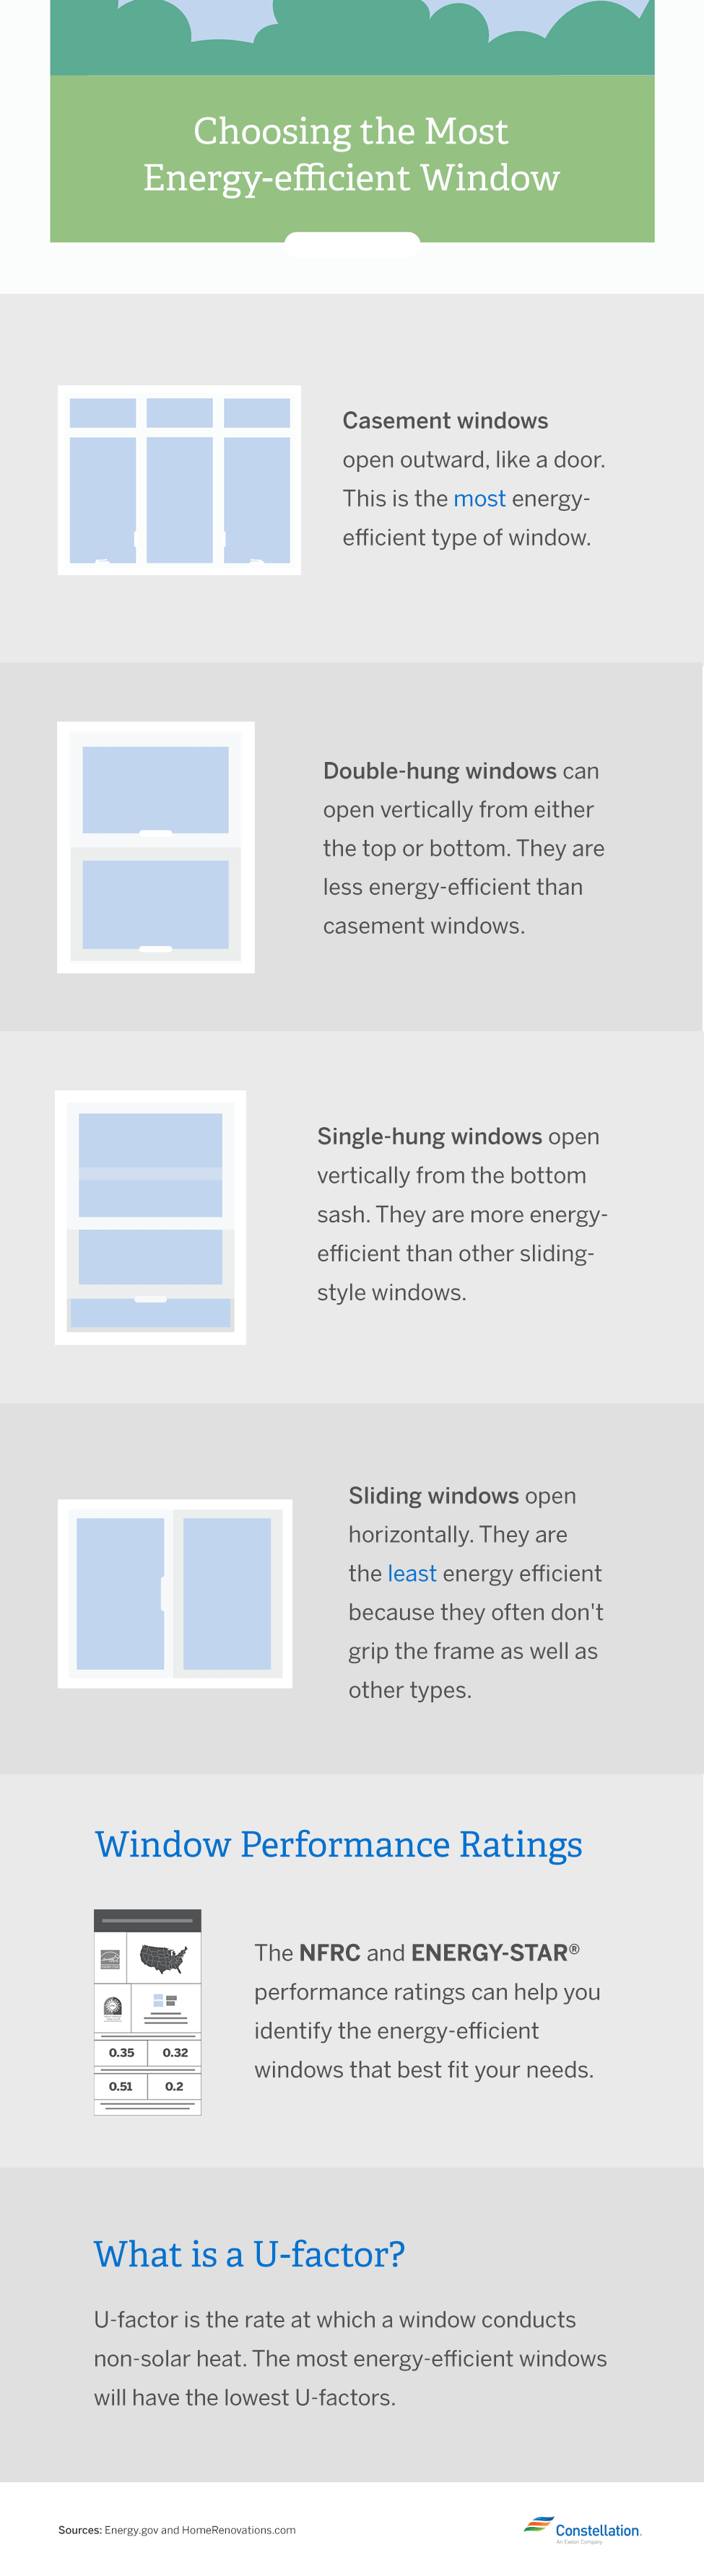 Energy efficiency series benefits of energy efficient windows for Efficient windows